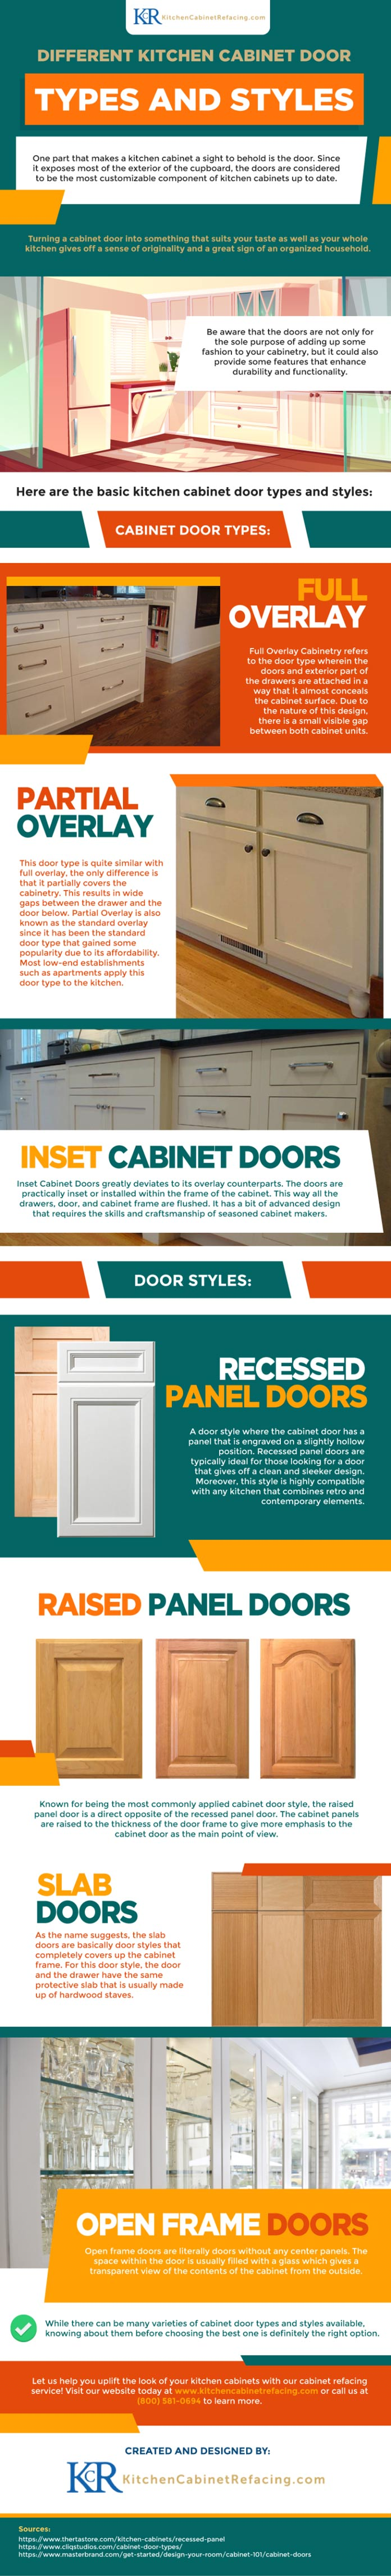 Different kitchen cabinet door types and styles [Infographic] 4